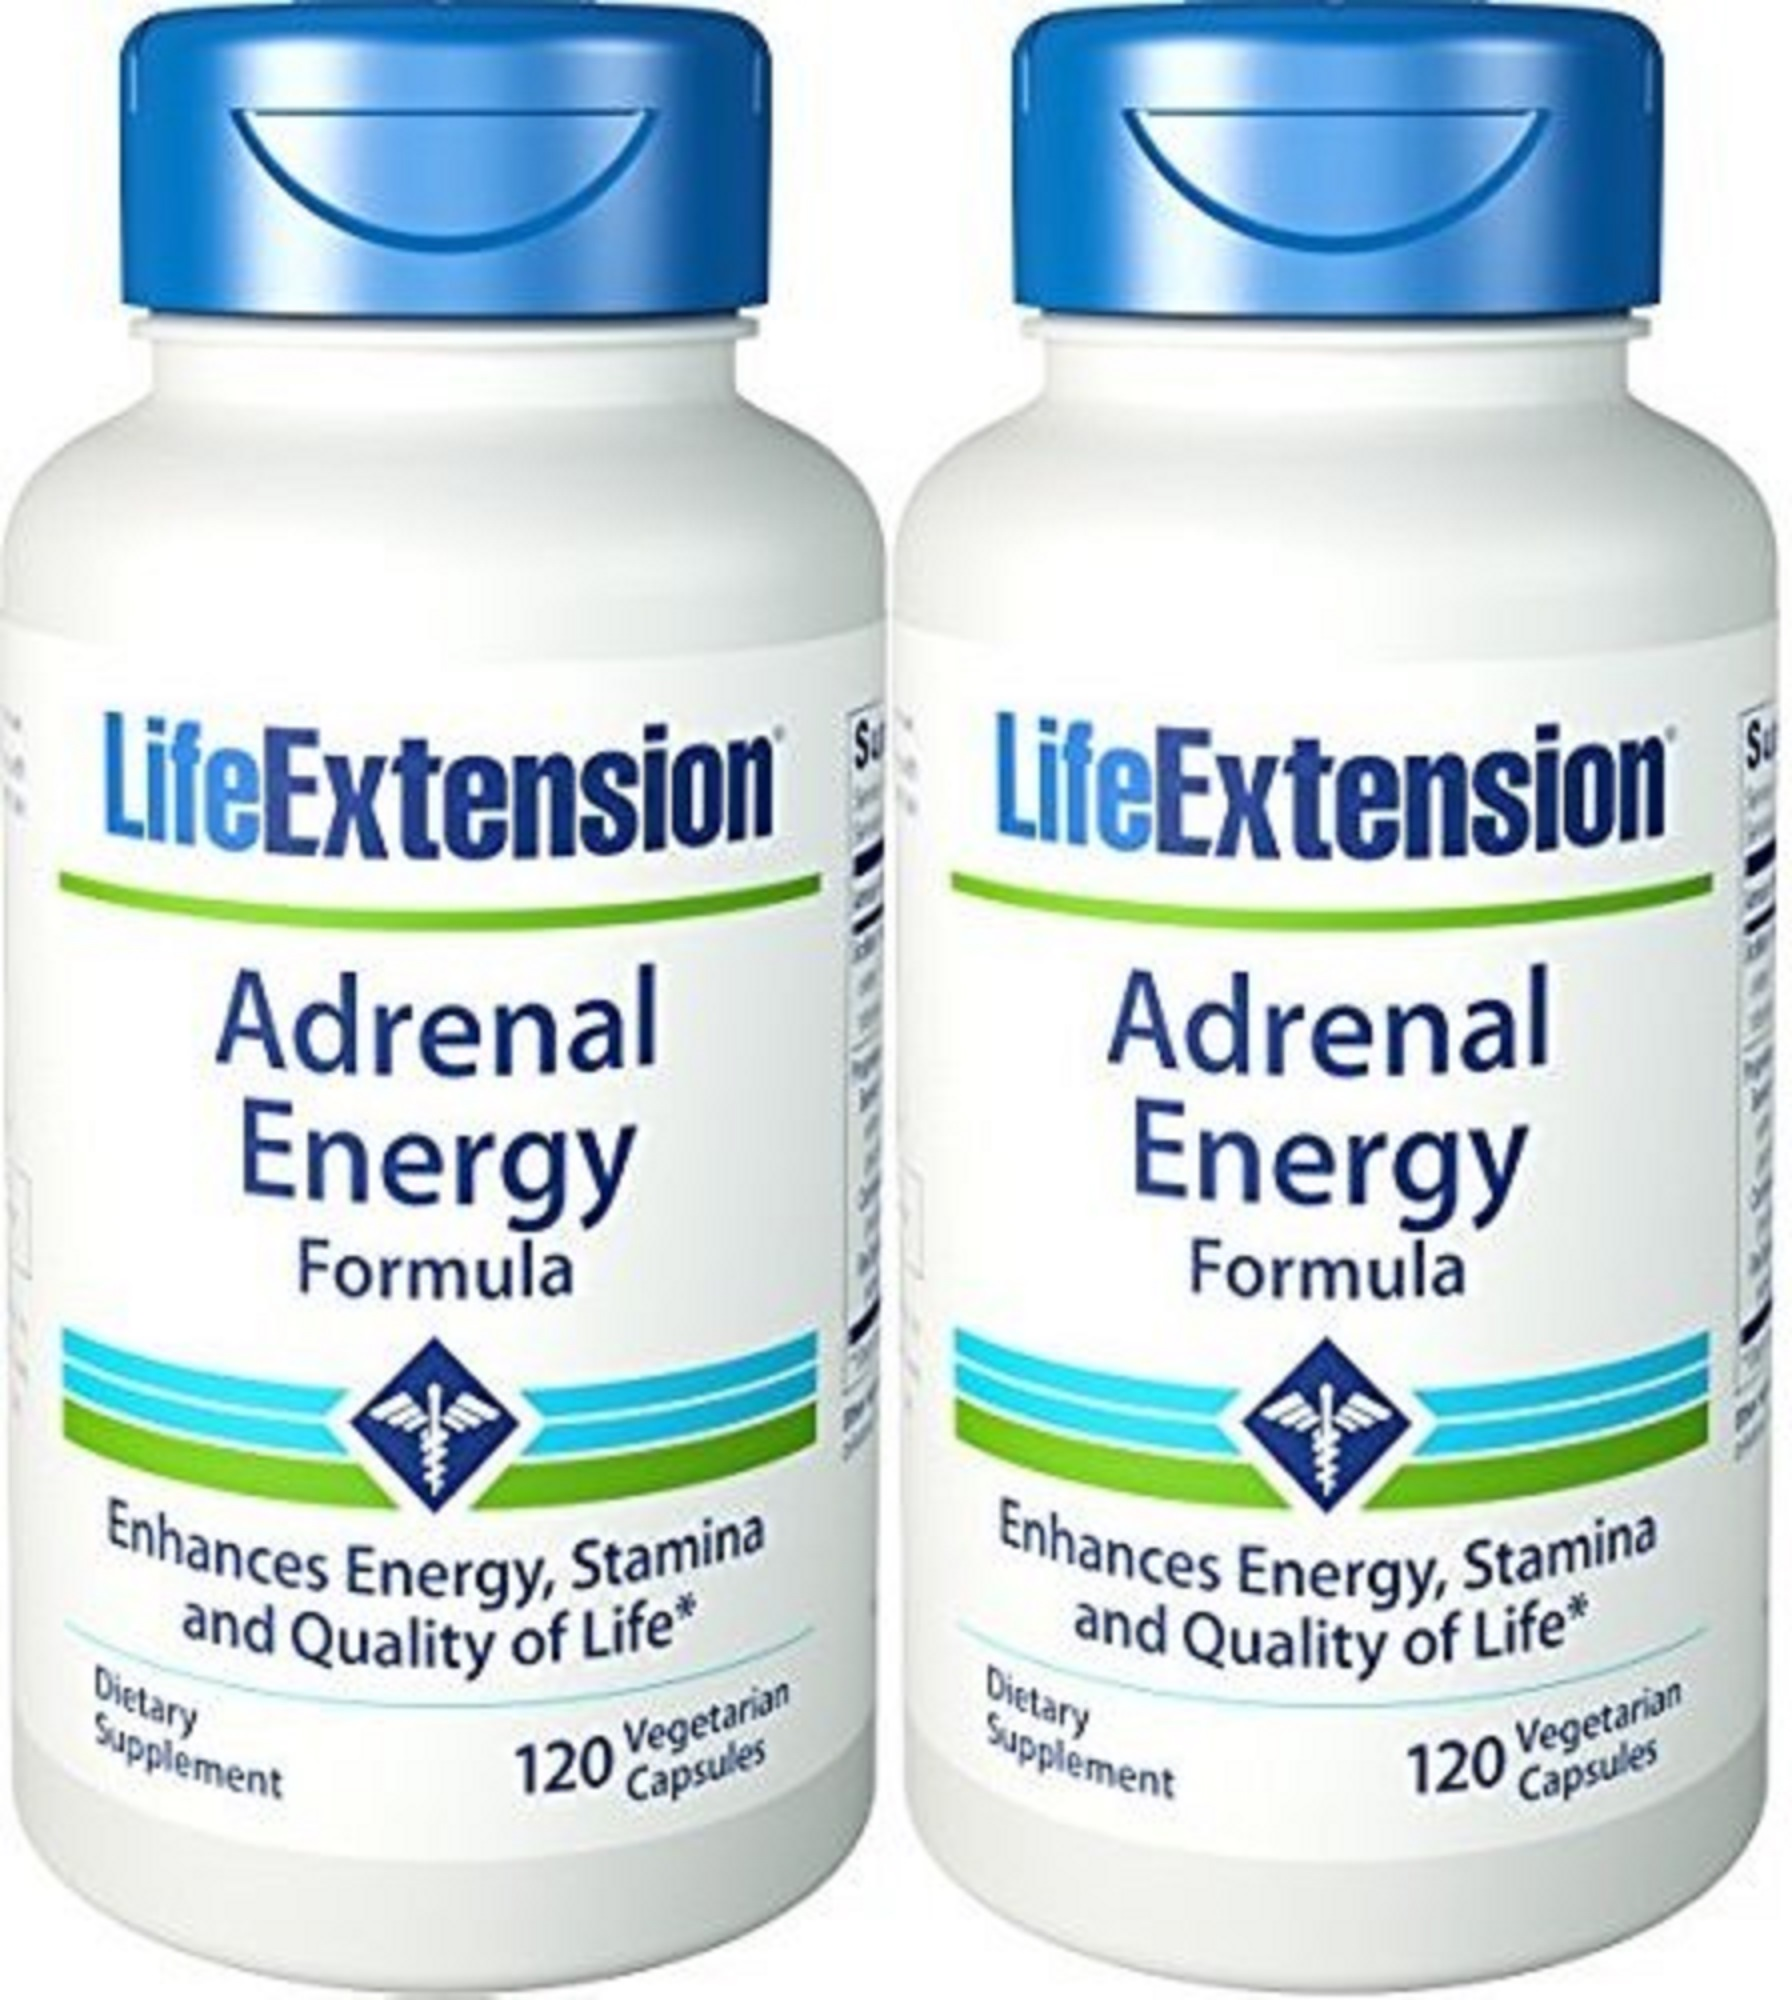 Life Extension Adrenal Energy Formula - 120 VCaps (Pack of 2)